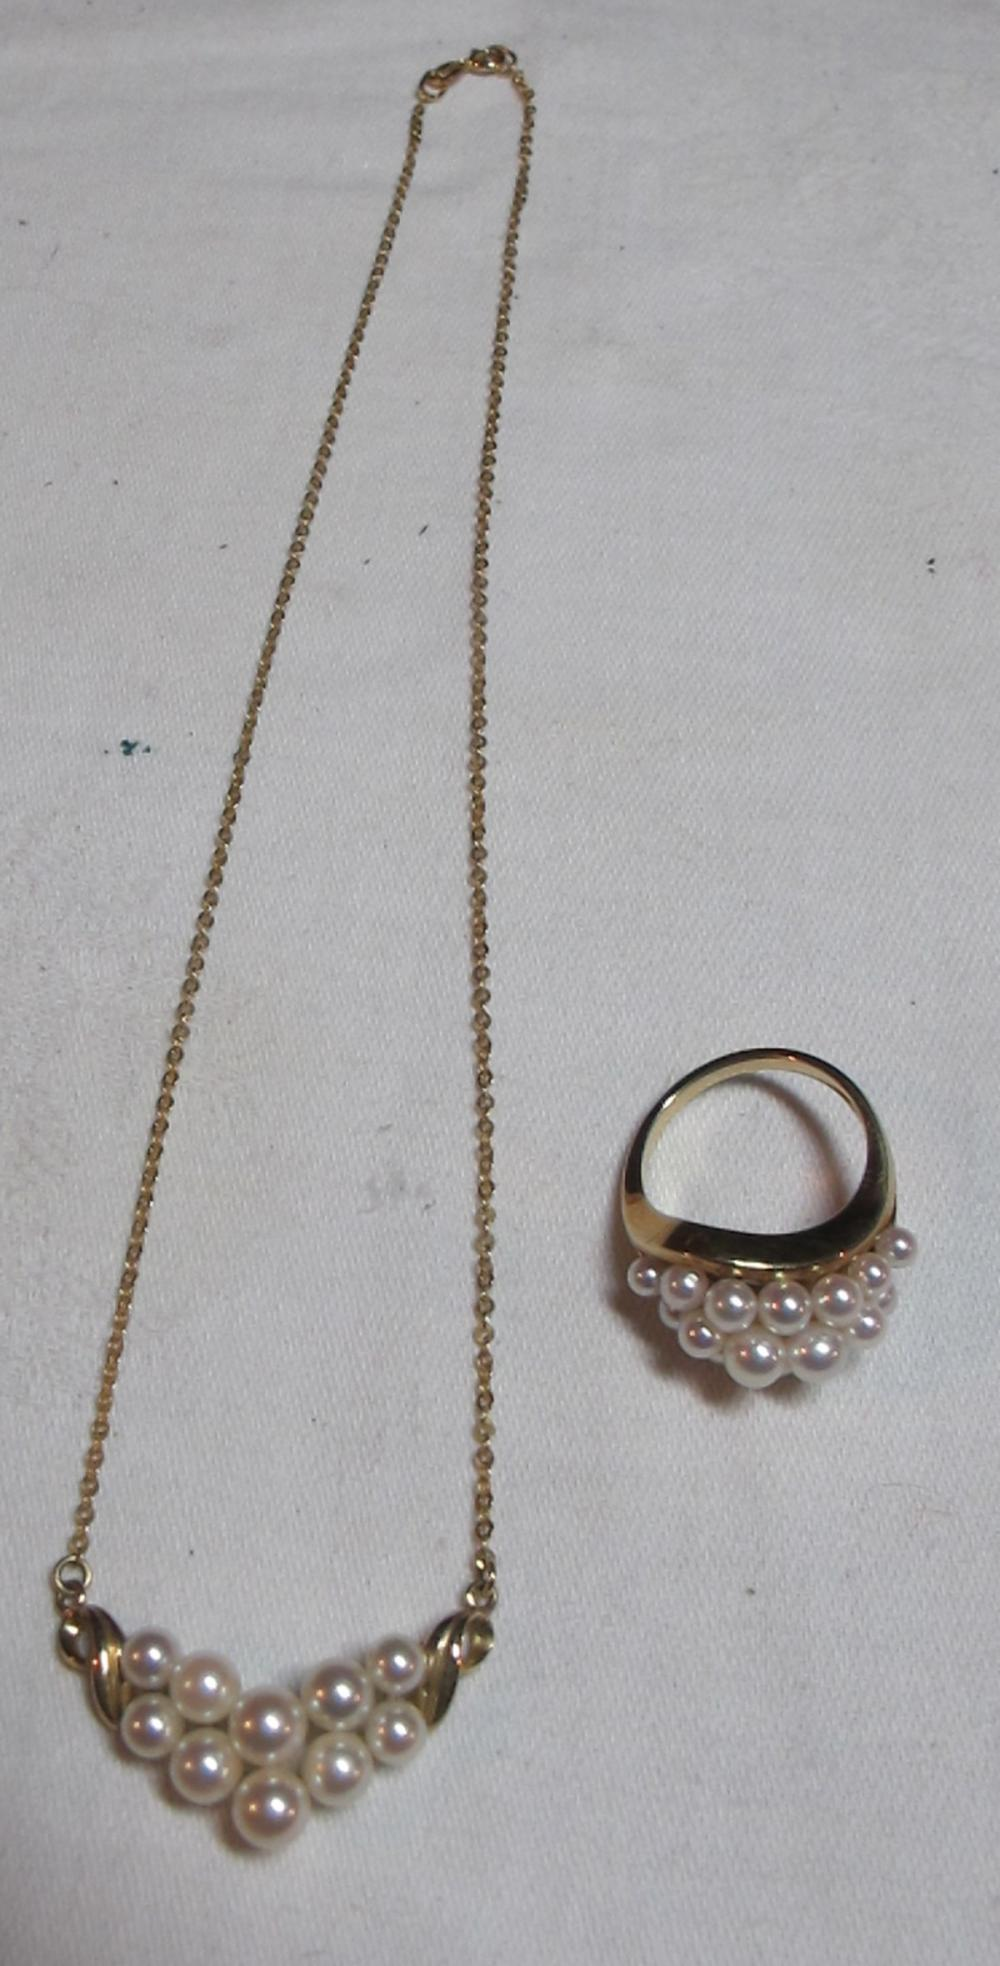 Lot 41: WHITE PEARL 14K YELLOW GOLD RING 6.25 AND NECKLACE PENDANT SET 585